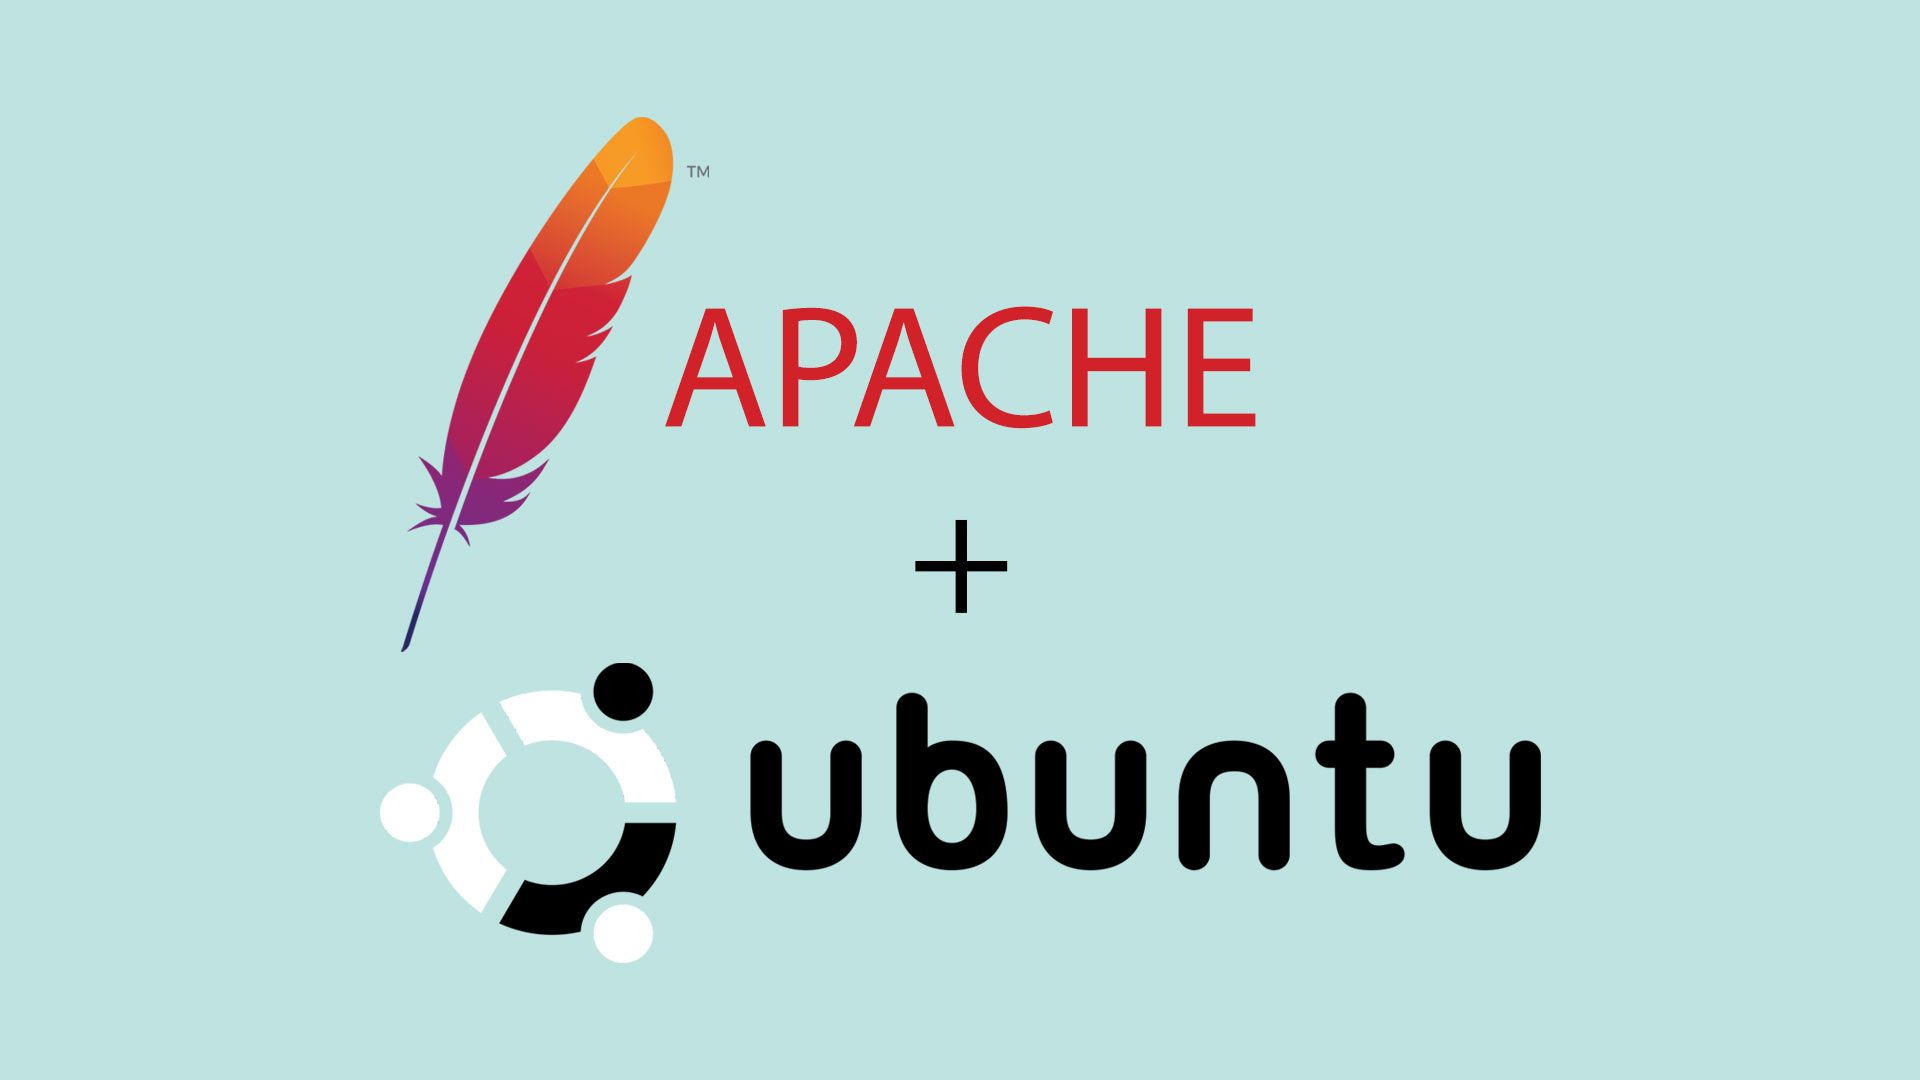 How to Install Apache2 on Ubuntu 16.04 / 18.04 / 18.10